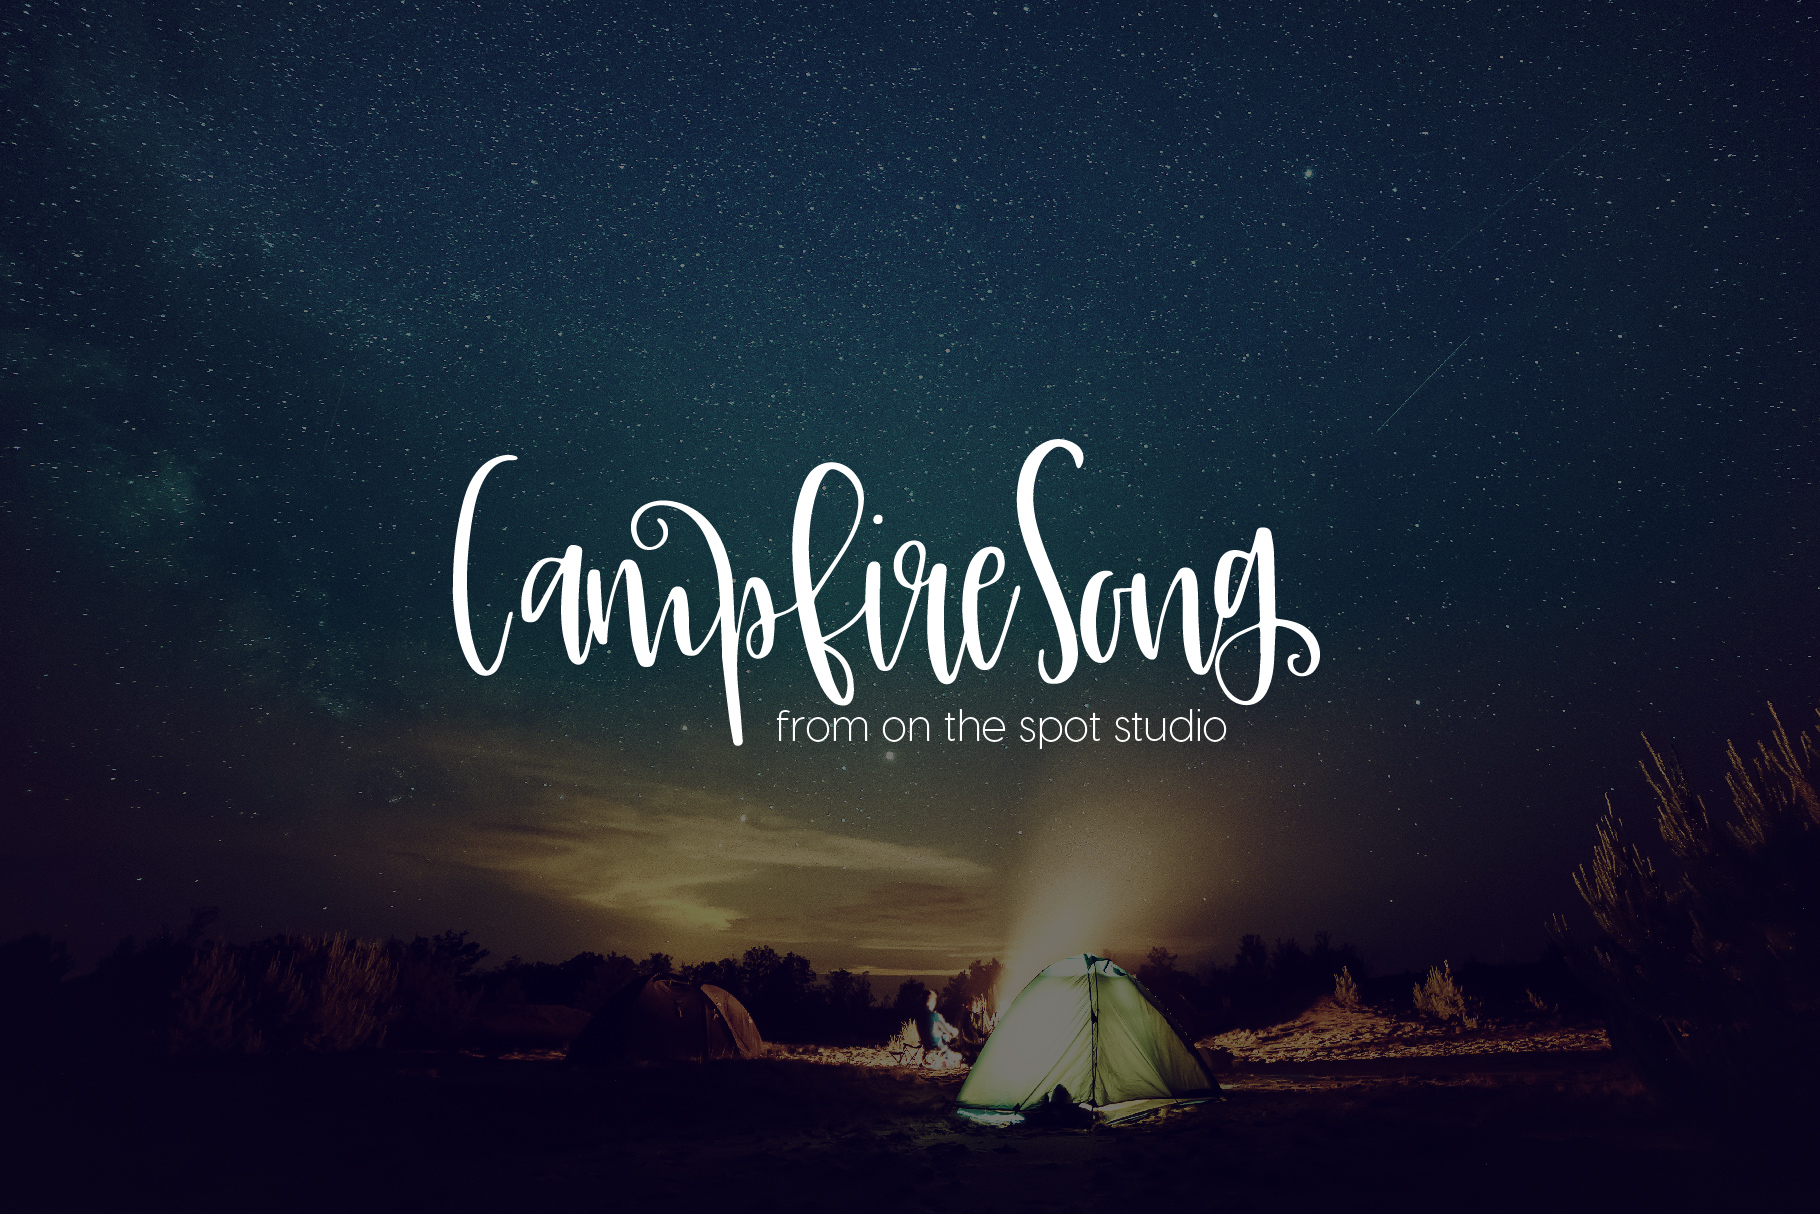 Campfire Song example image 1